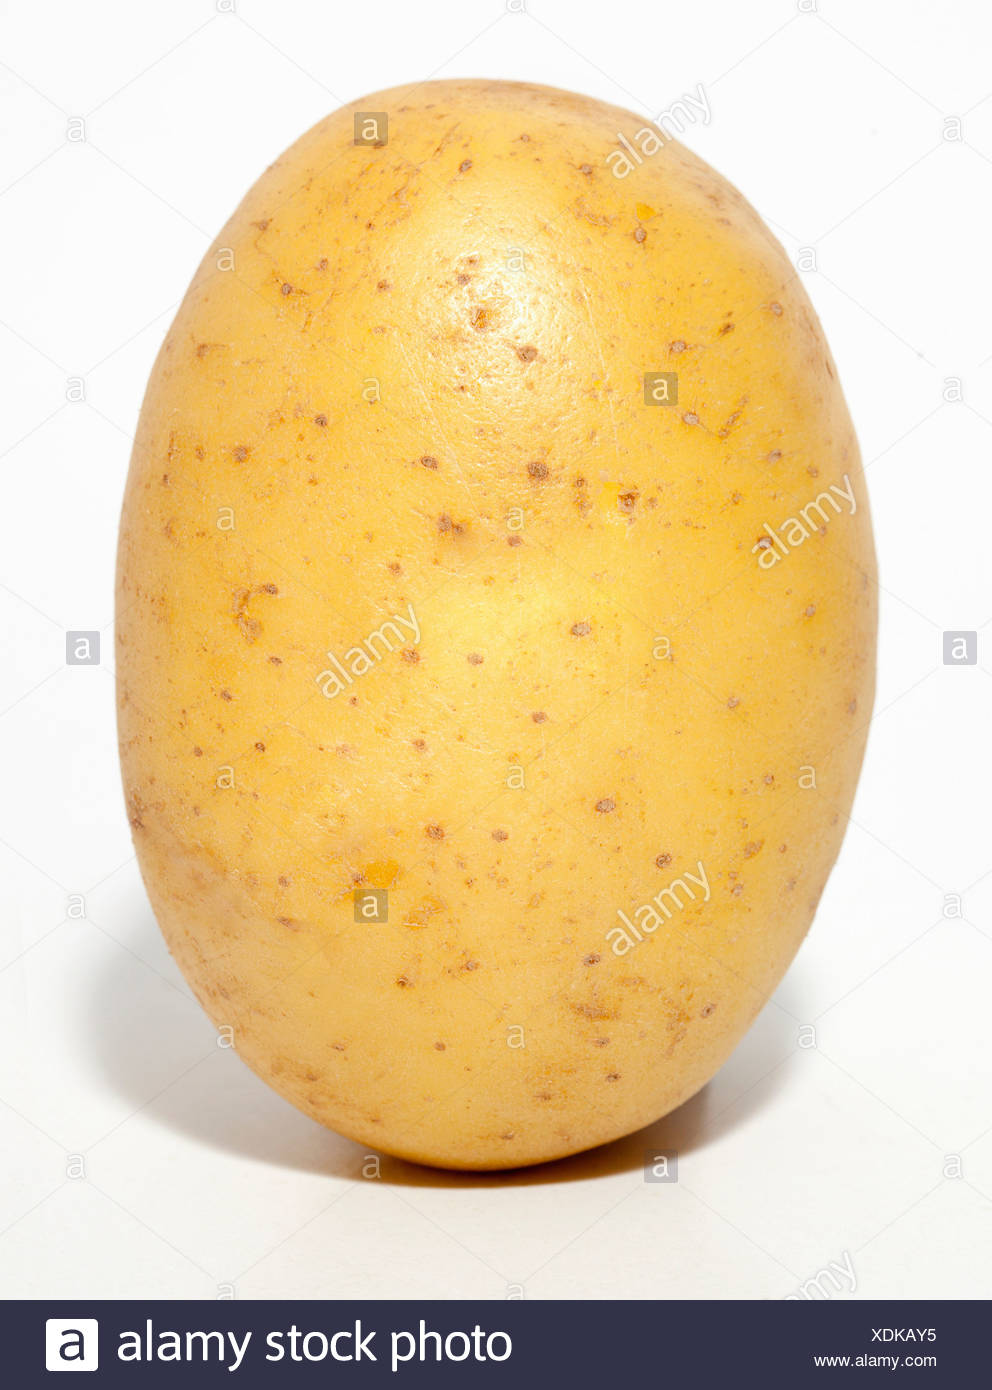 Raw potato - Stock Image